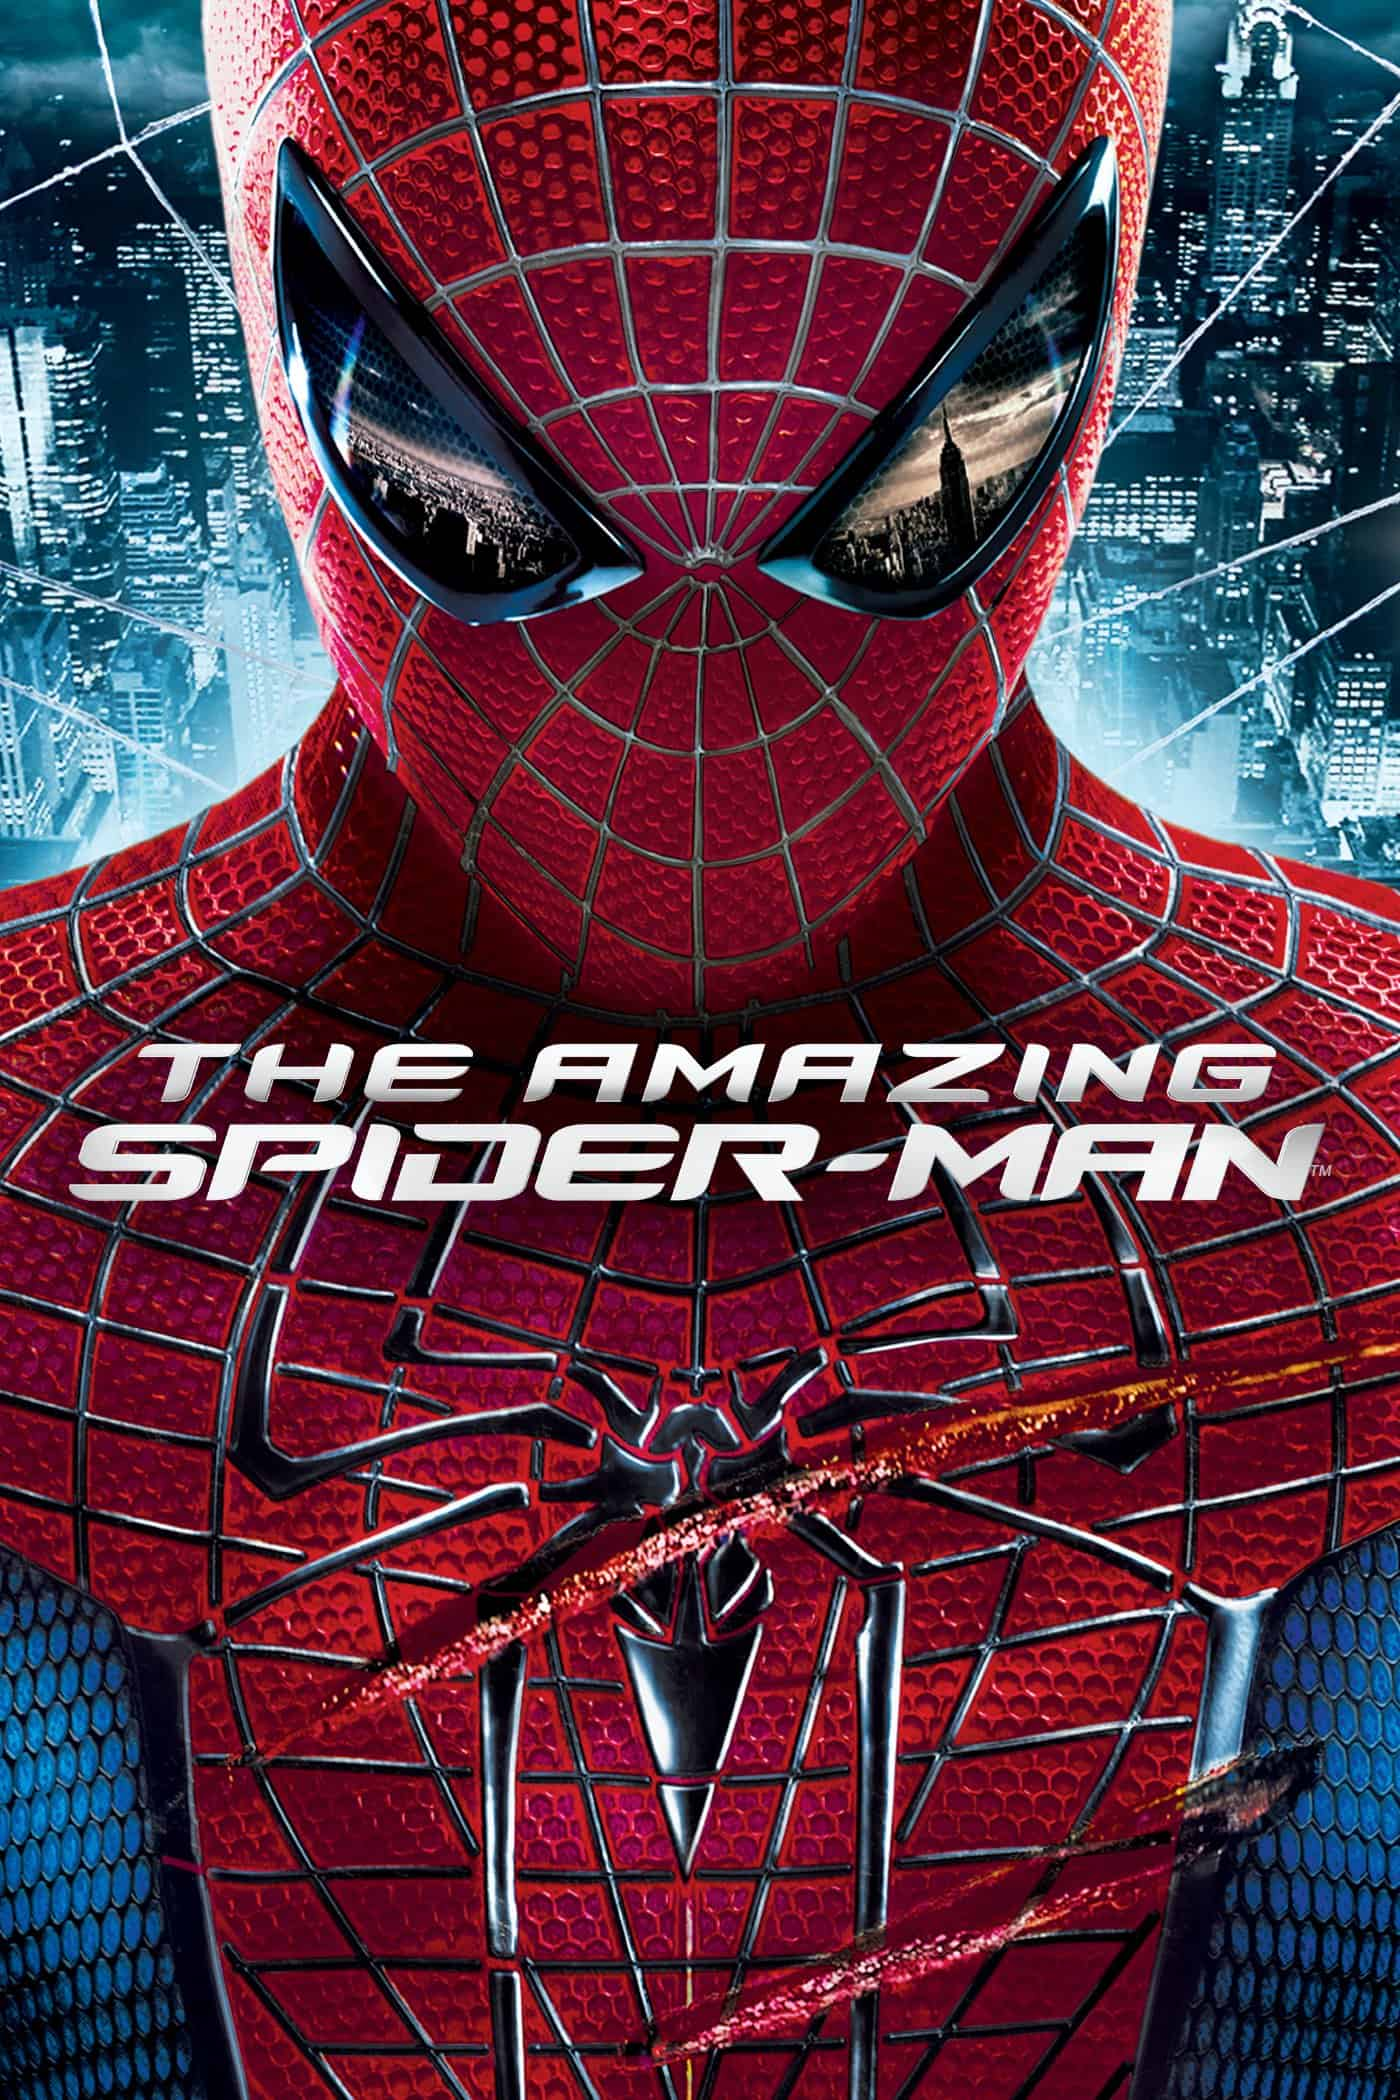 The Amazing Spider-Man, 2012